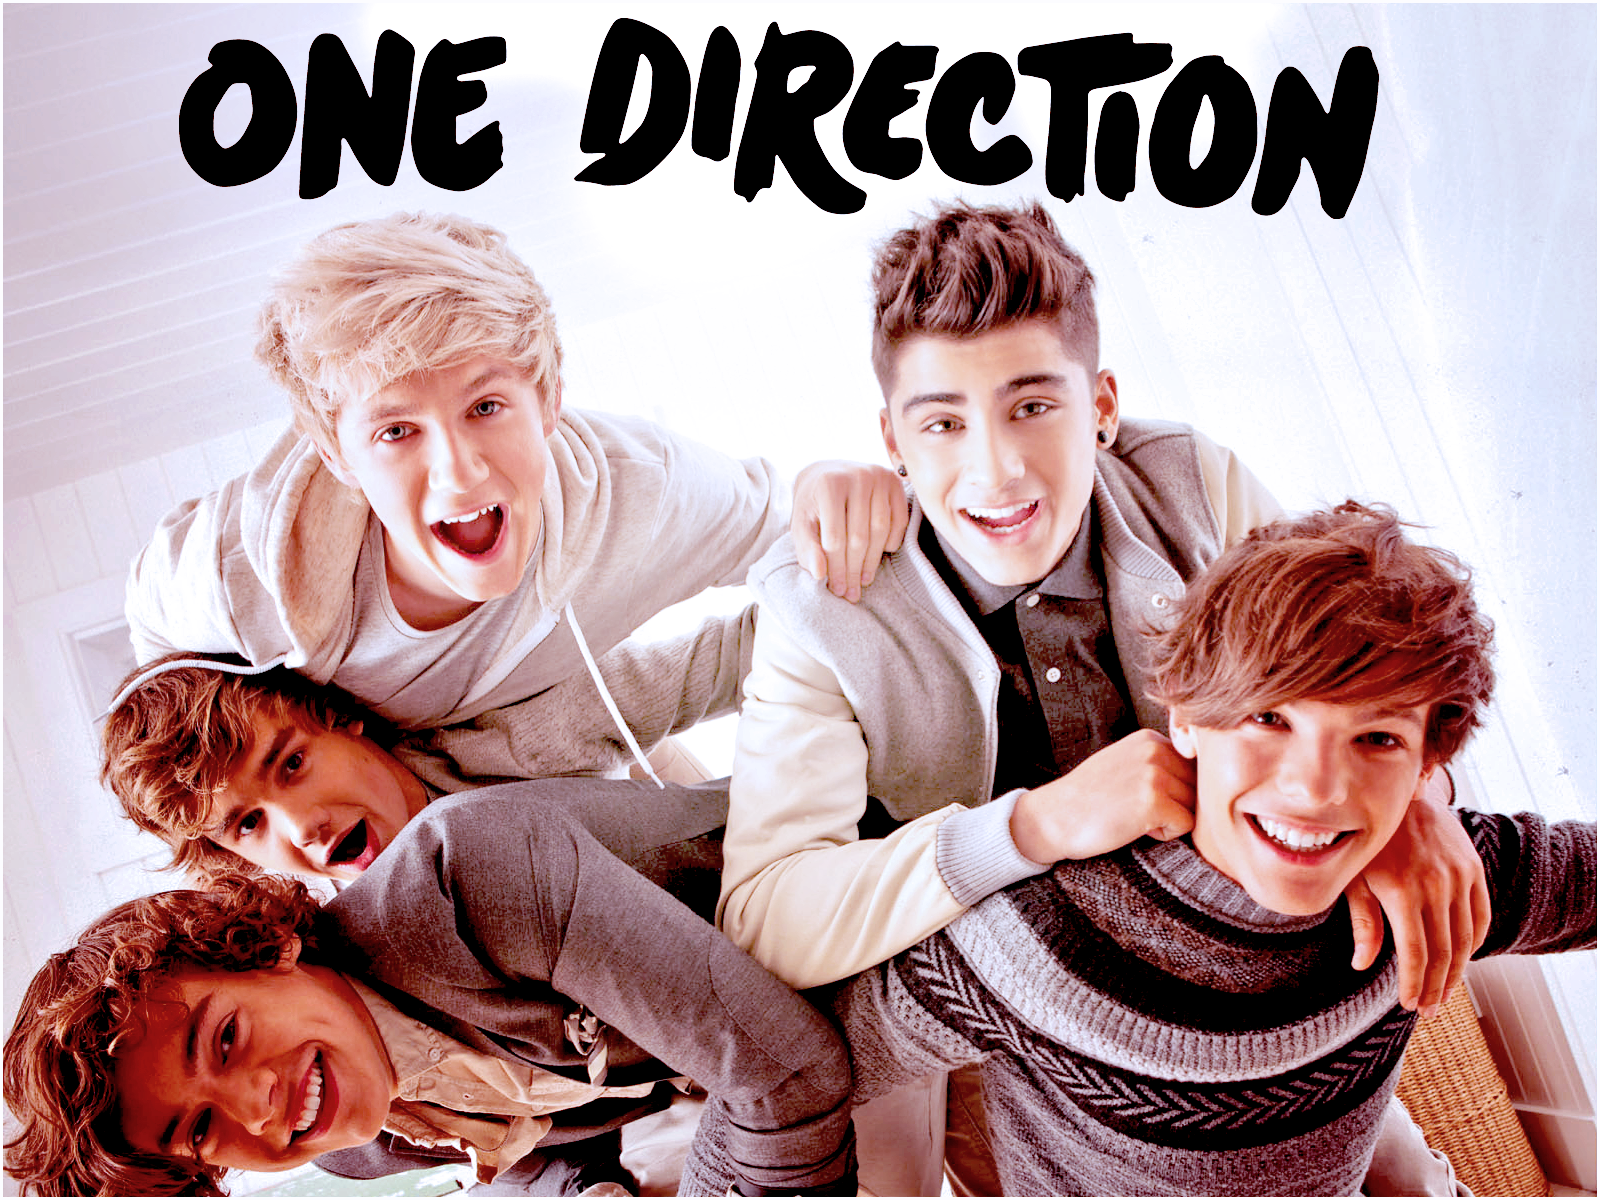 One Direction 2013 wallpaper High Quality WallpapersWallpaper 1600x1200